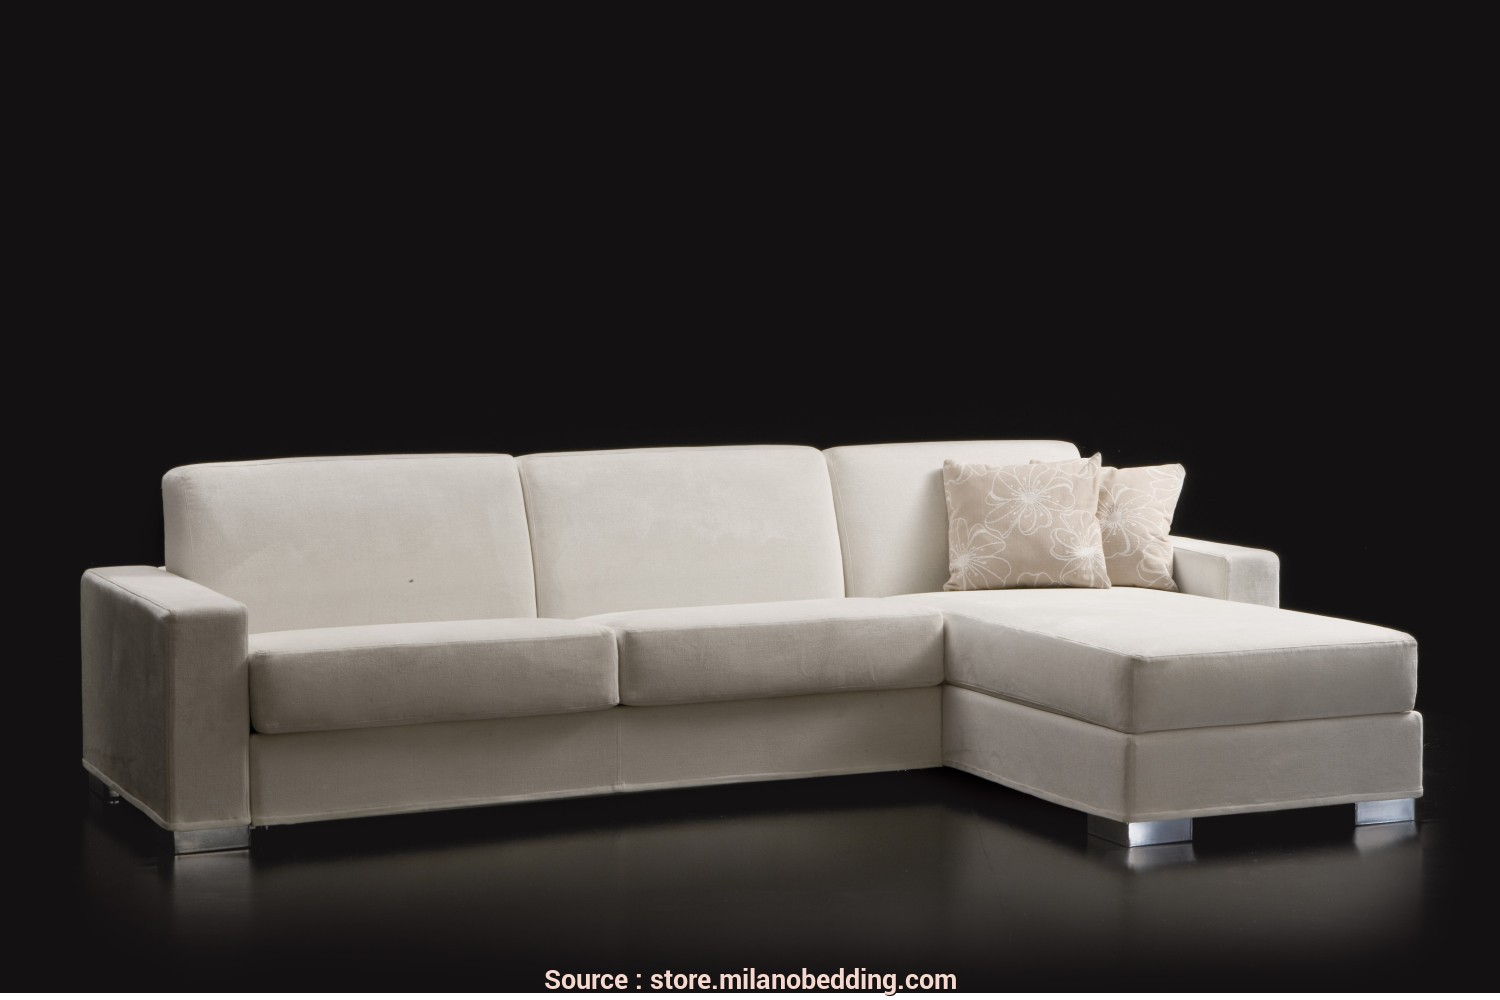 Divano Chaise Longue 180, Loveable Duke Couch With Chaise Longue